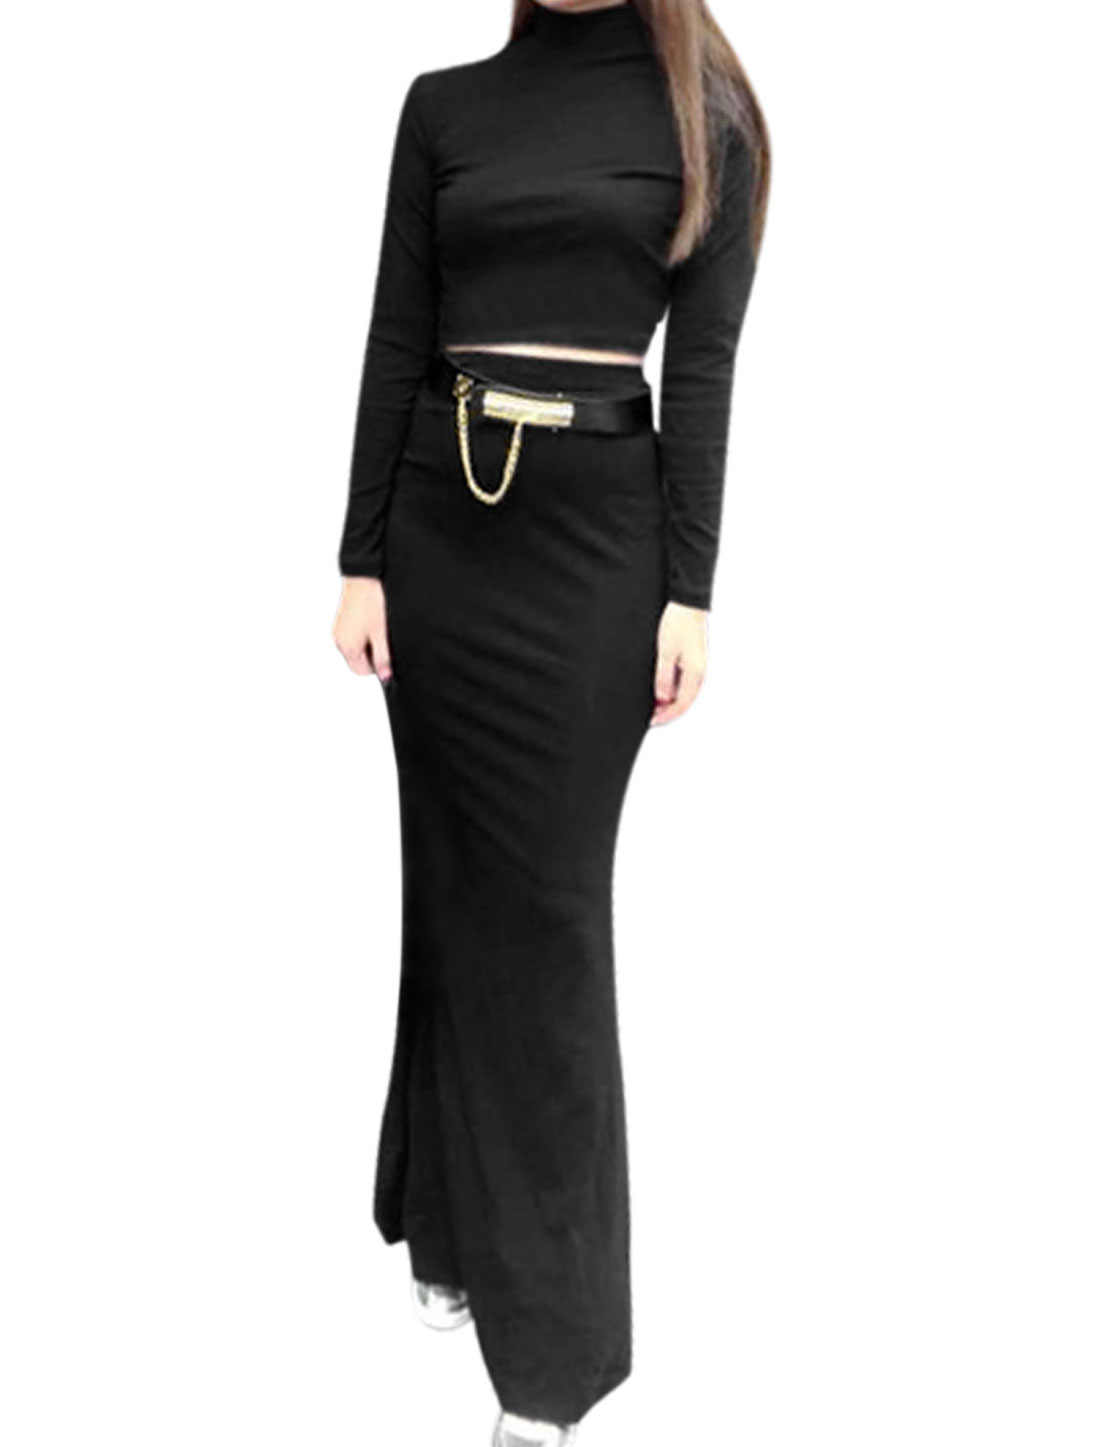 Women Mock Neck Belero Shirt w Elastic Waist Long Skirt Black M